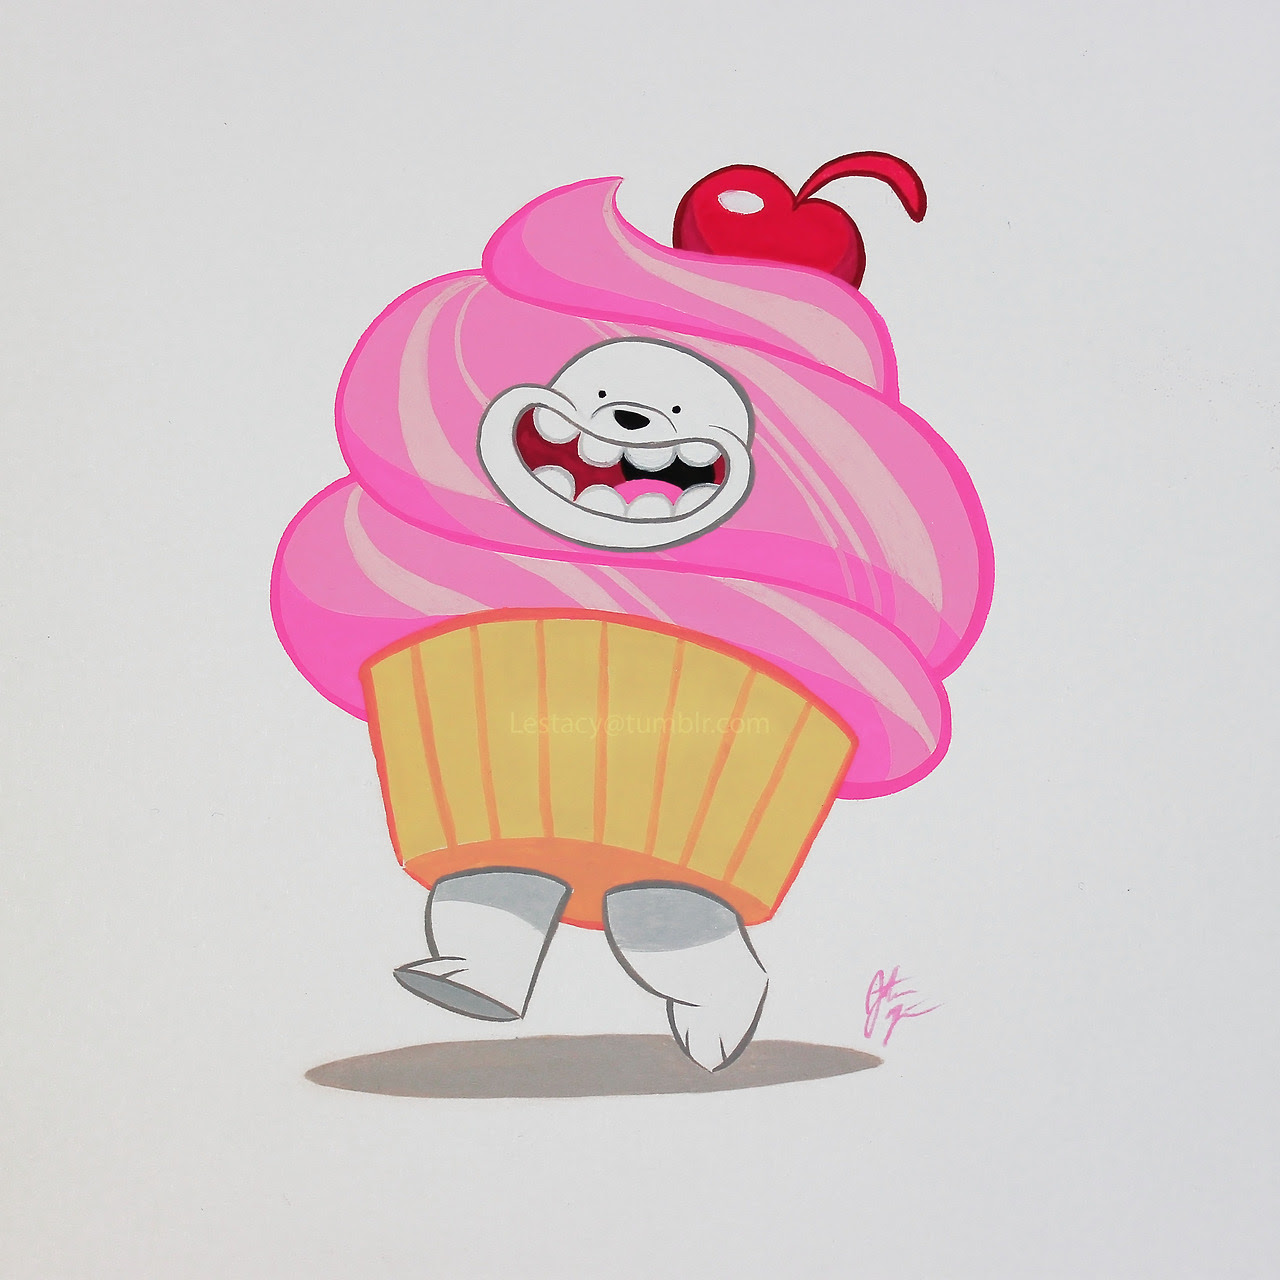 Cup… cake? I was reminded of this adorable scene in We Bare Bears from Cupcake Job! I think Ice Bear is my favorite of the brothers. Gouache on mixed media paper.